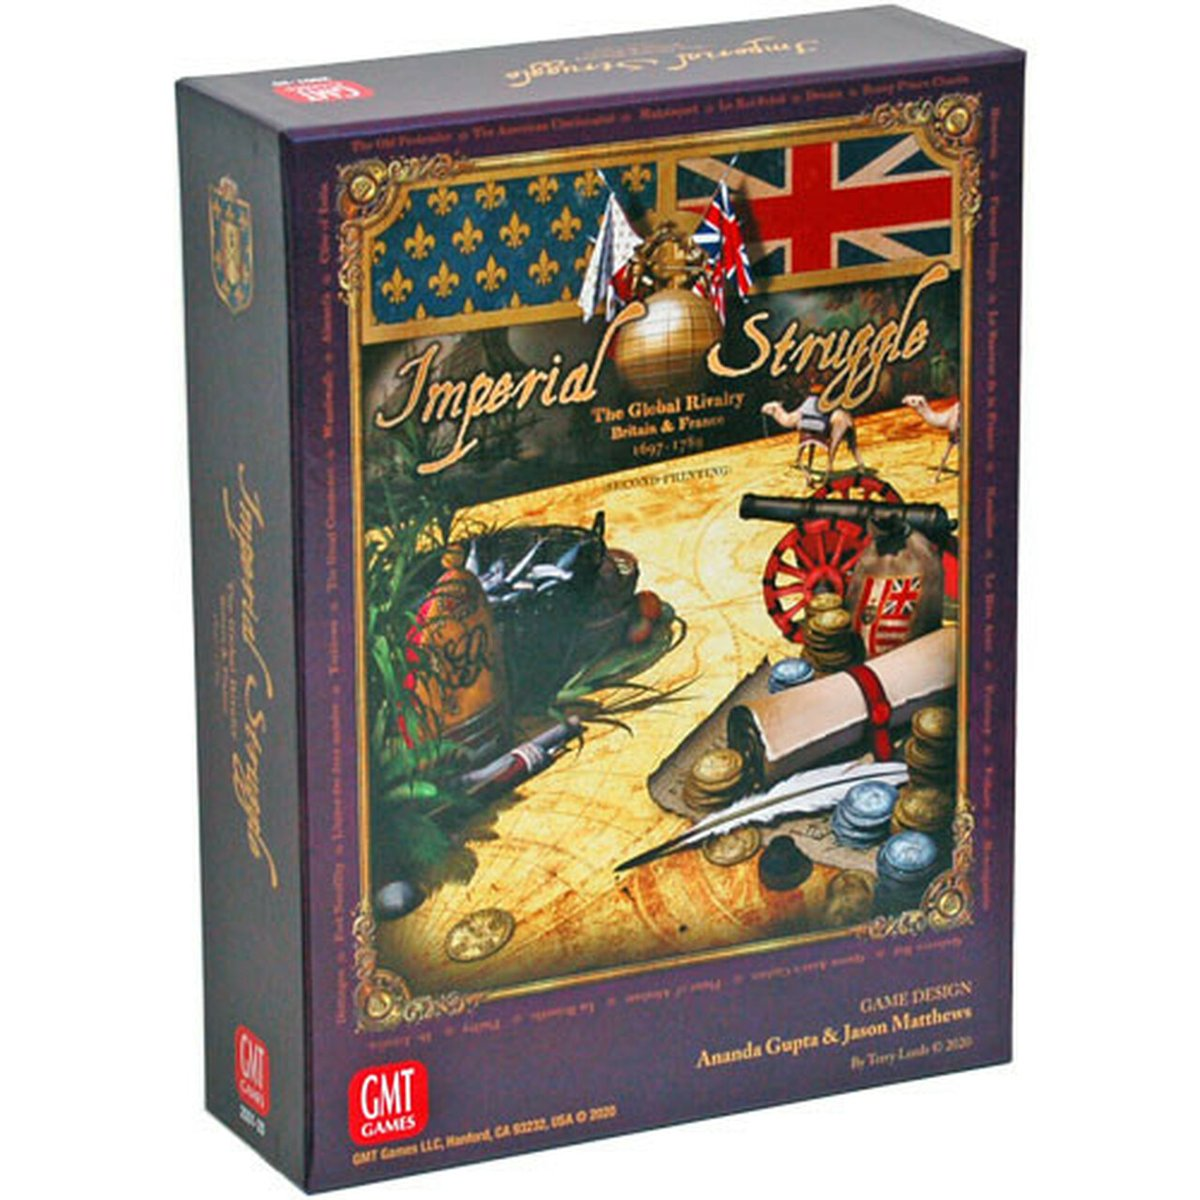 Game Nerdz Deal of the Day  Imperial Struggle (2nd Printing) (Deal Of The Day)  Save $27.03, pay only $31.97  #ad   81 in stock right now!